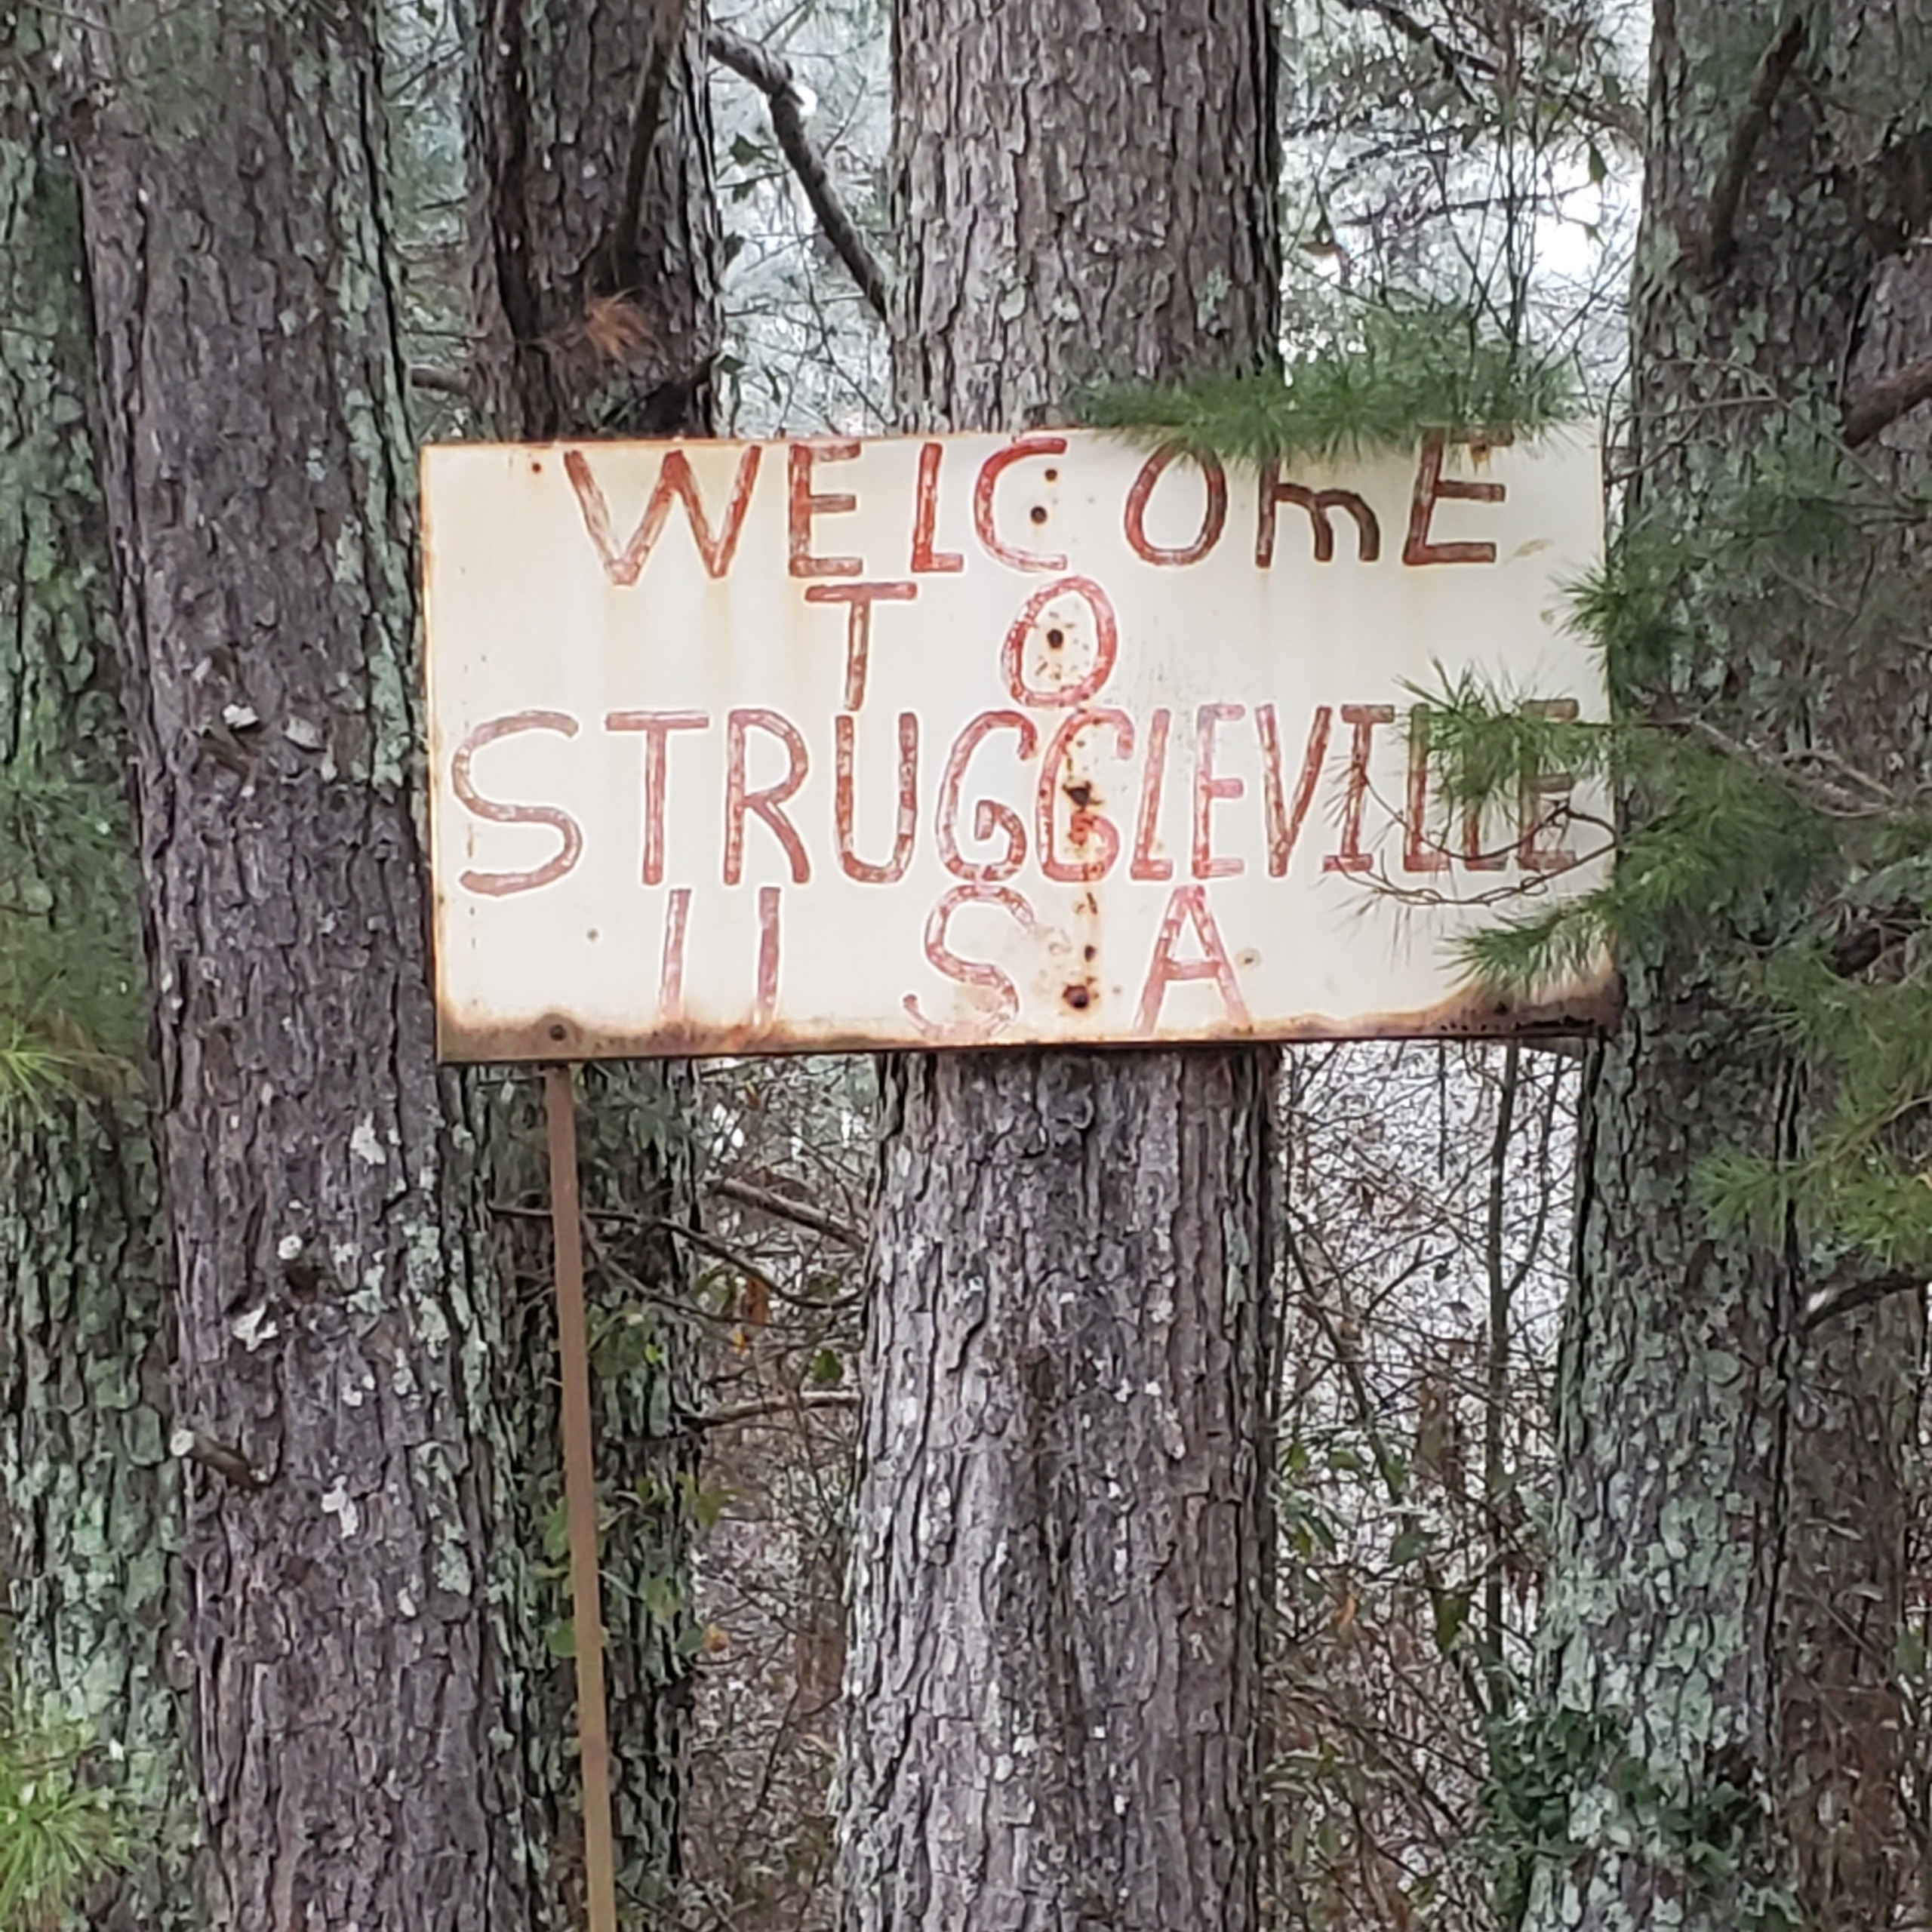 Photo of an old metal sign that says Welcome To Struggleville U.S.A. by Pastor Bo Wagner